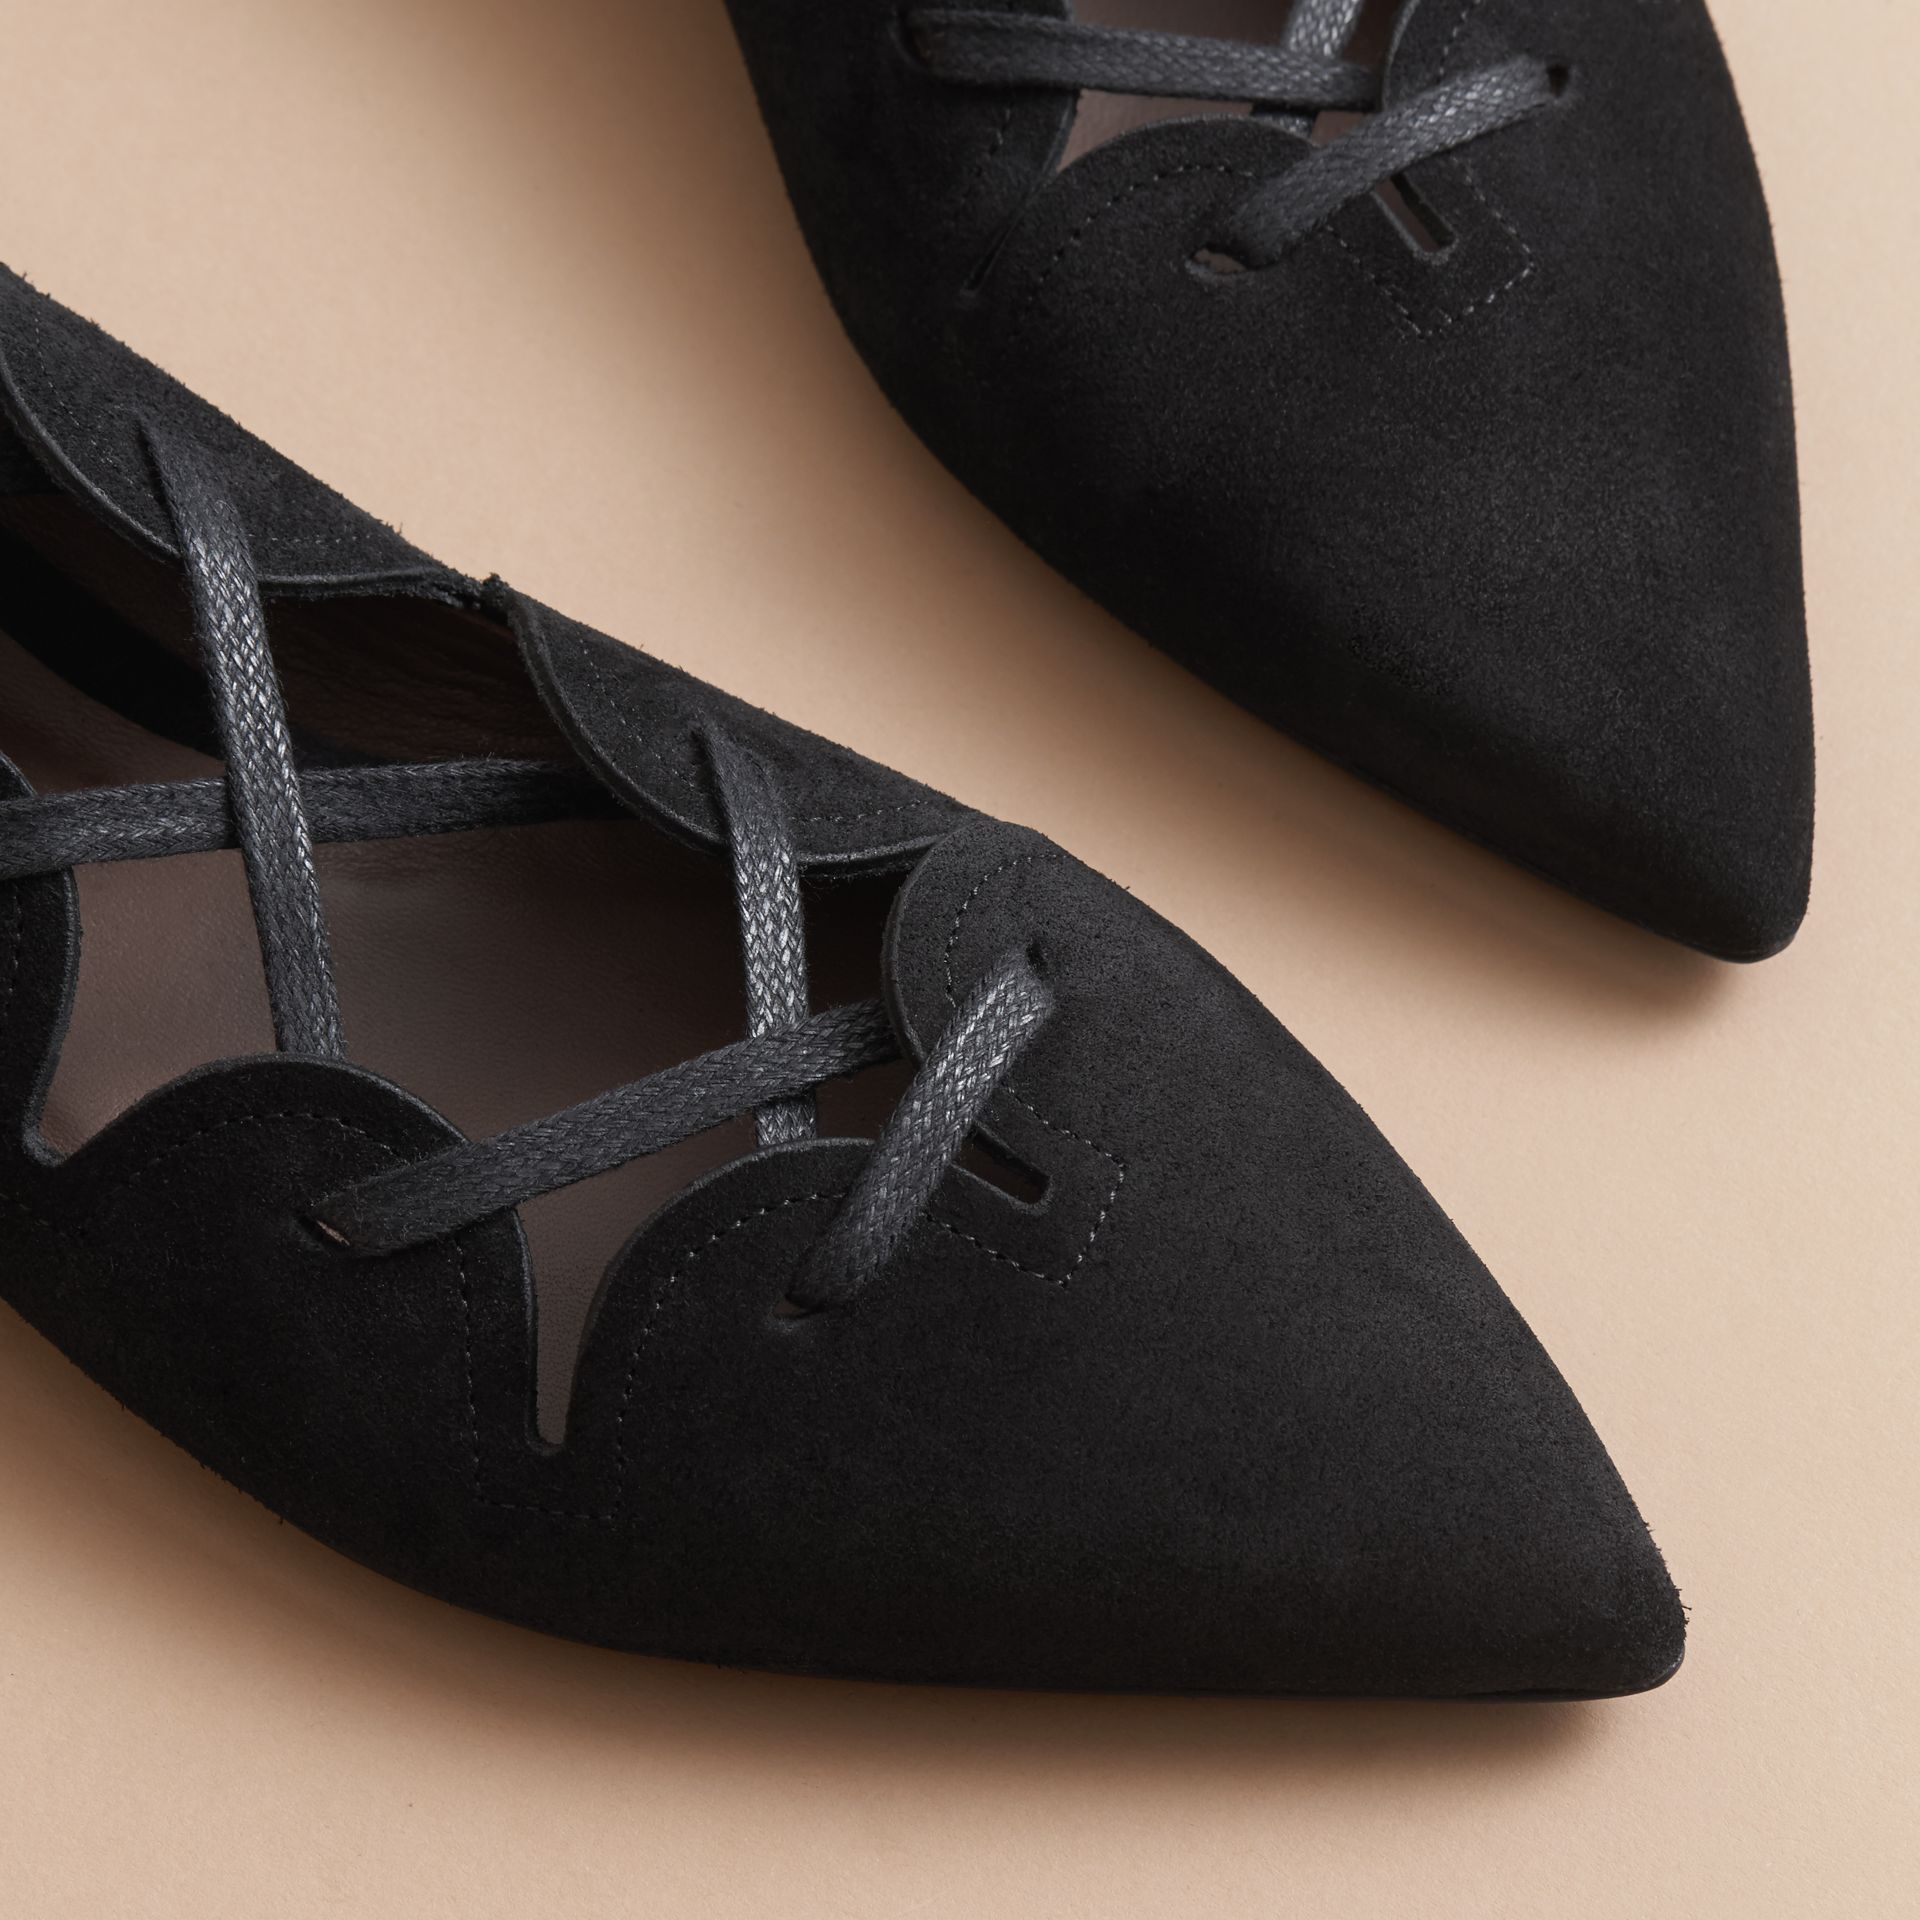 Scalloped Suede Lace-up Ballerinas in Black - Women | Burberry - gallery image 5